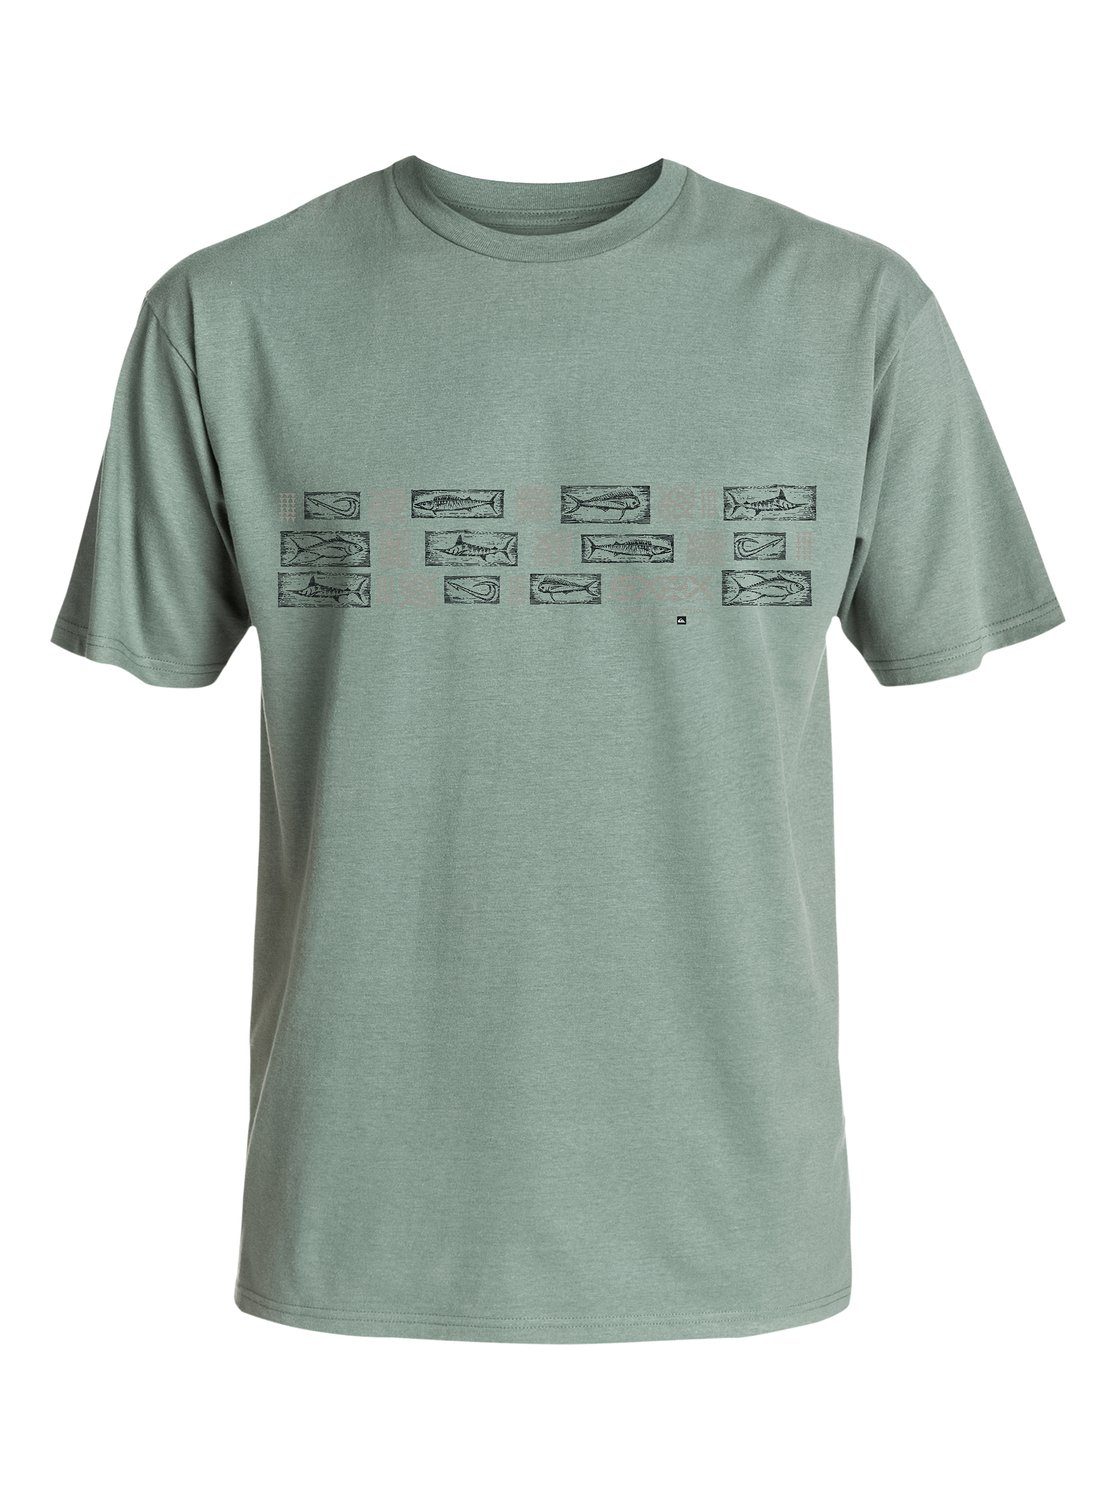 Quiksilver Waterman Collection Hopa Aina Band S//S T-Shirt Tee Sz Large